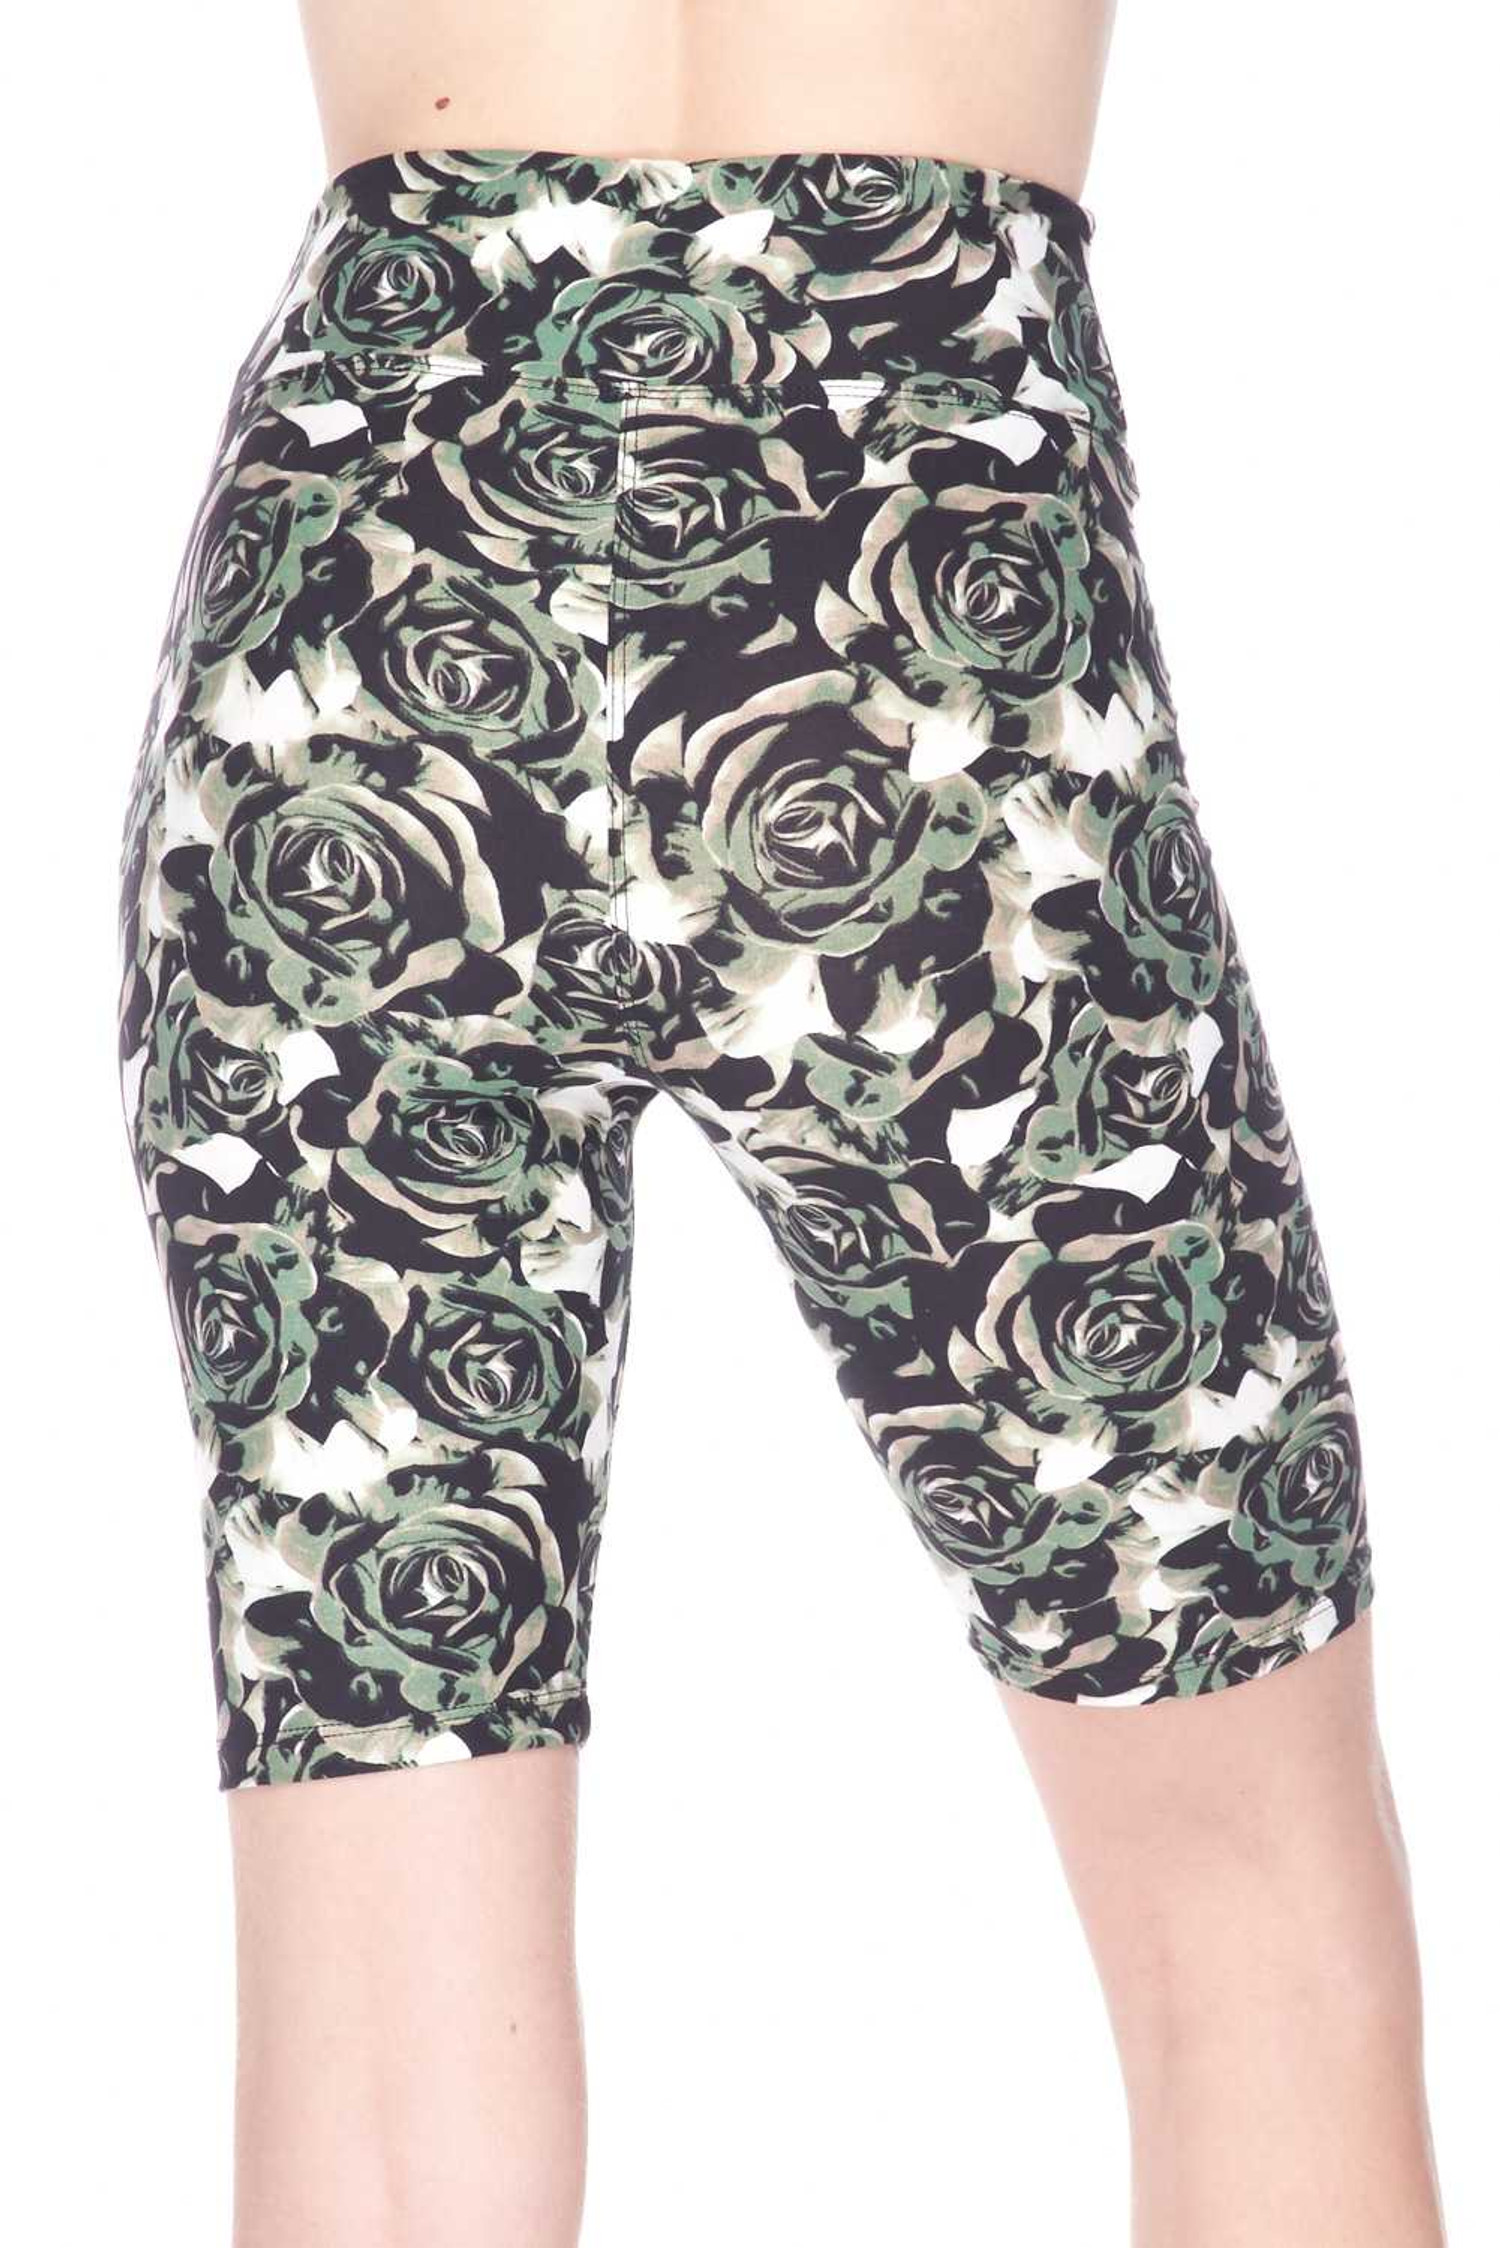 Brushed  Olive Rose Plus Size Shorts - 3 Inch